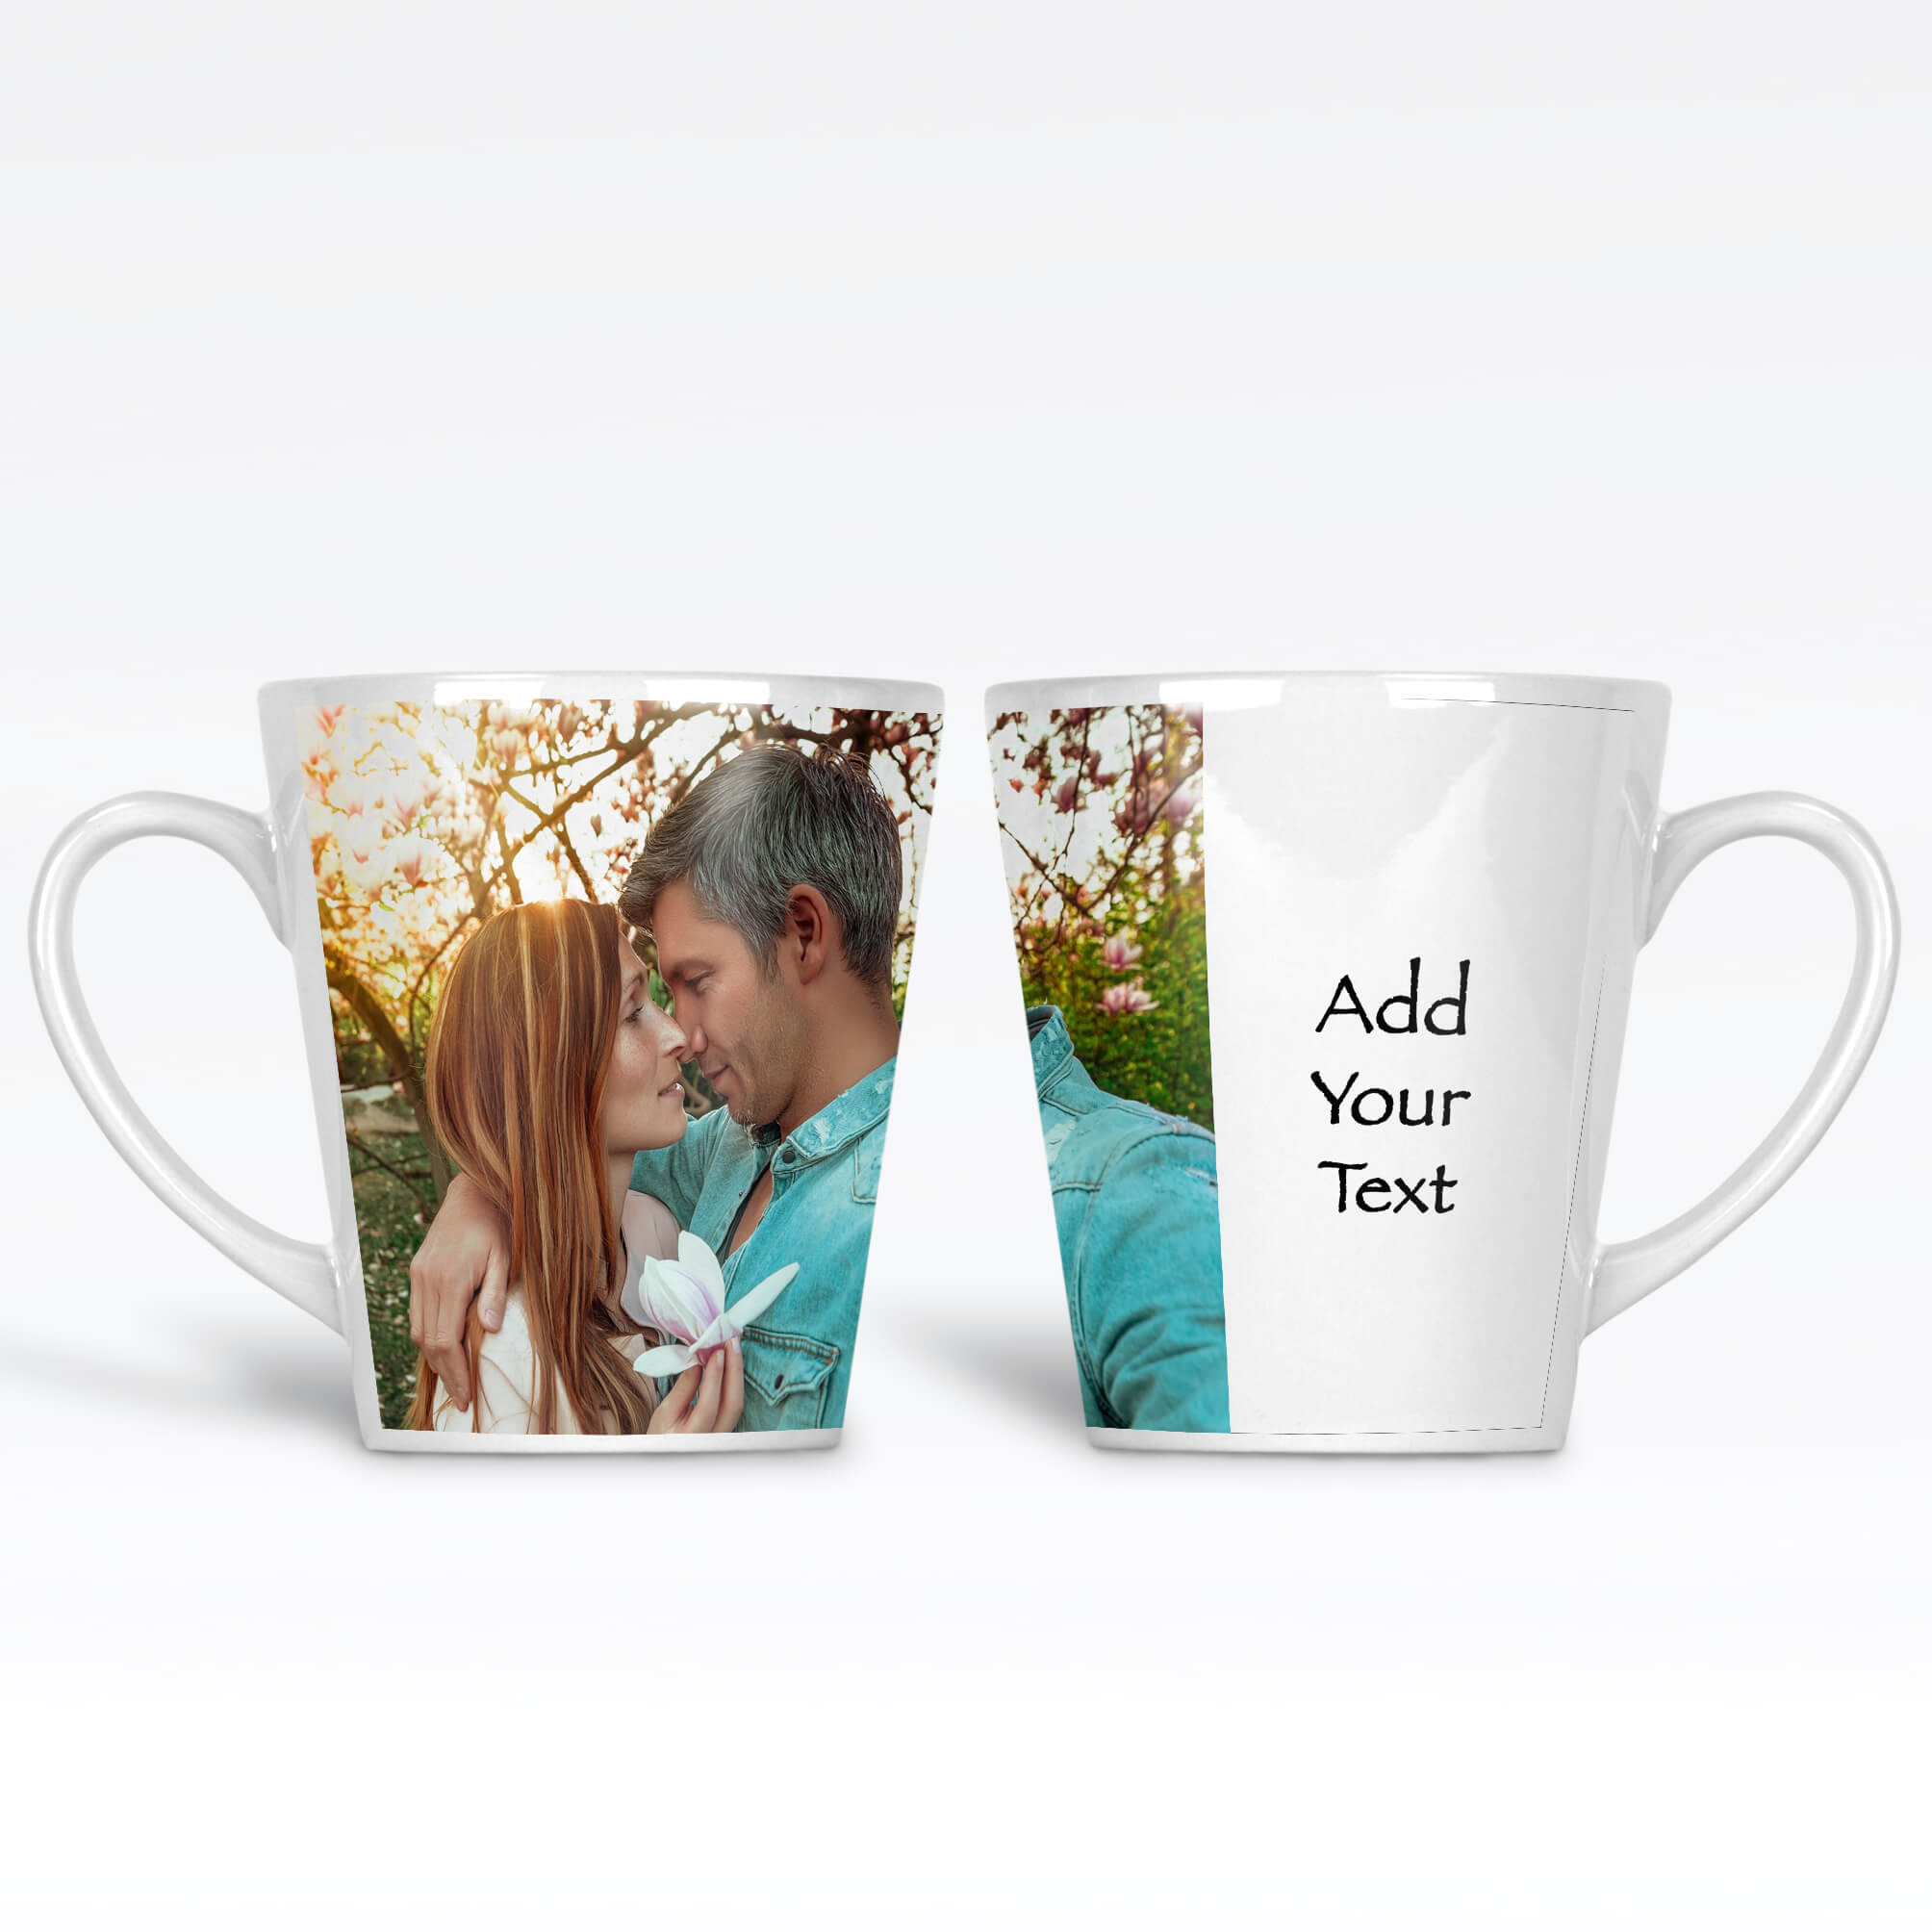 12 oz White Photo latte mug personalised with 1 photo and text next to it